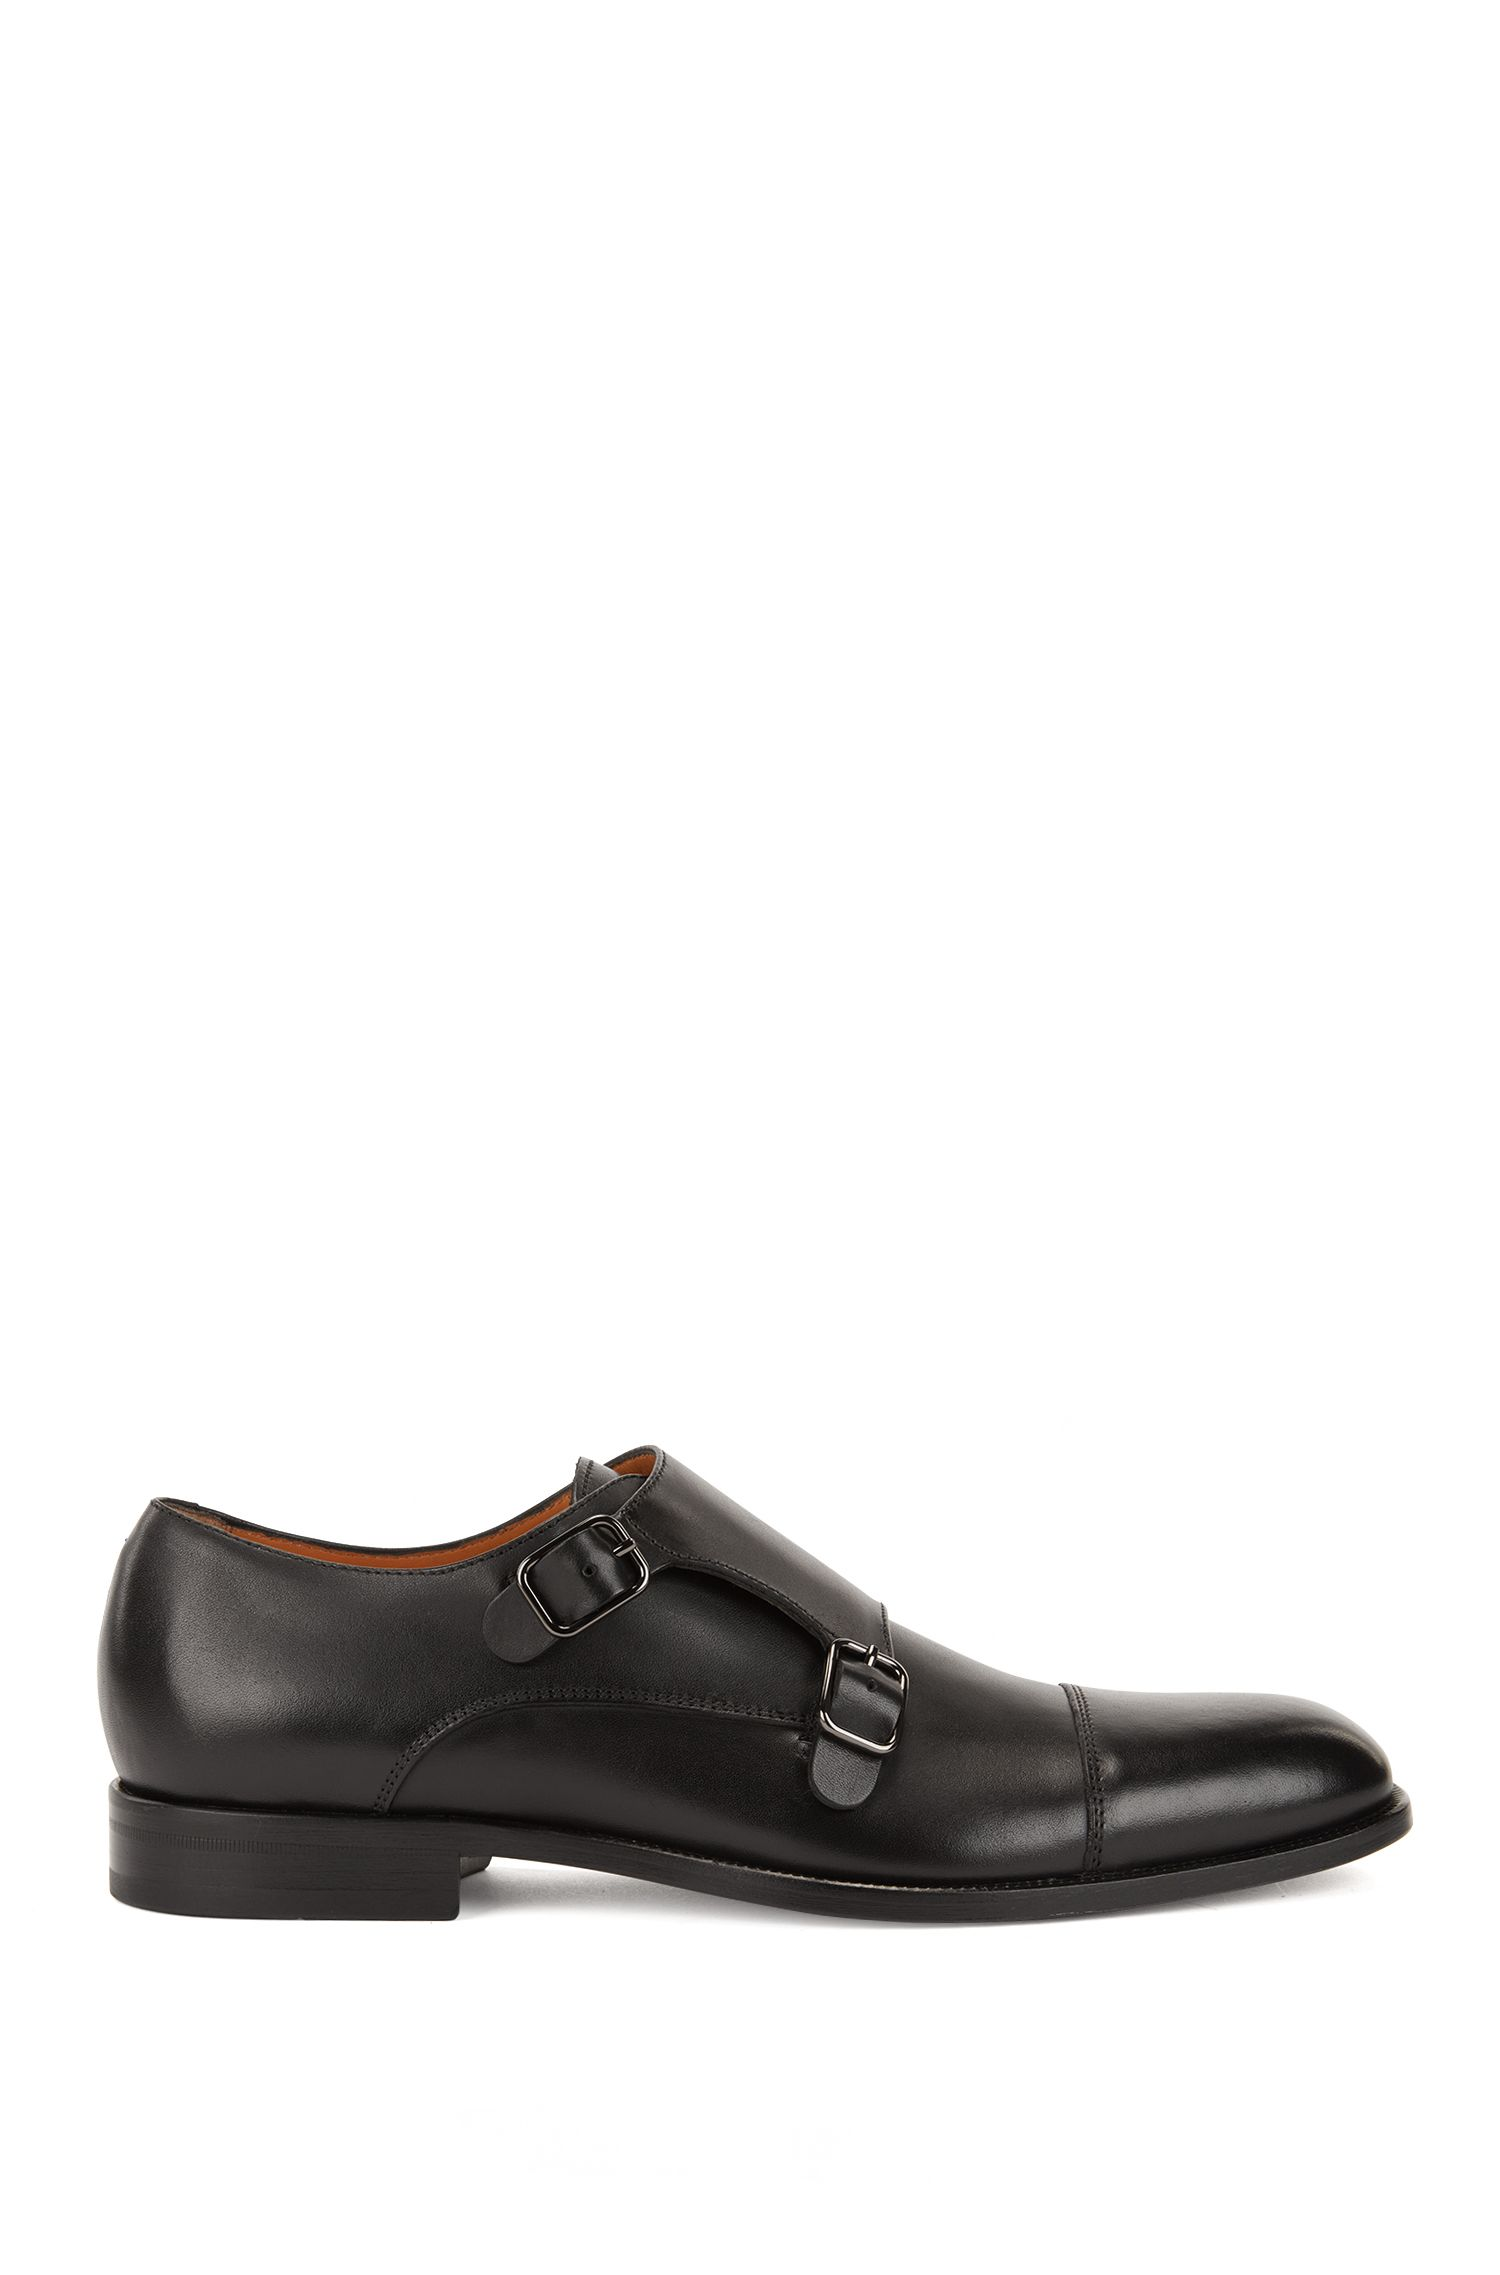 Double-monk shoes in smooth calf leather